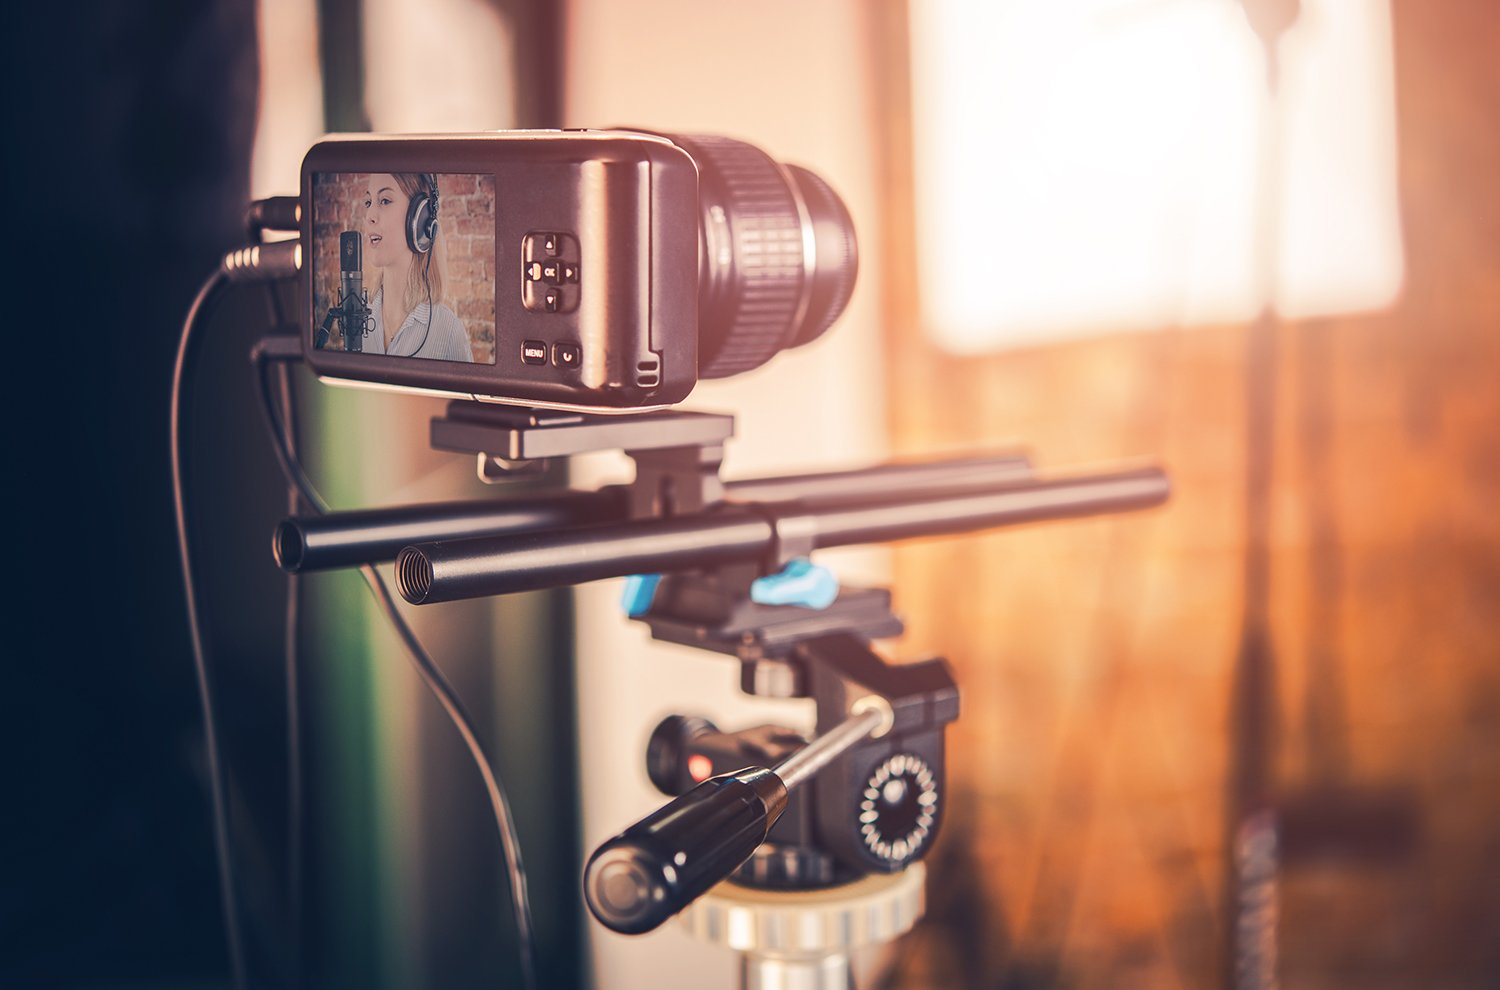 Video Equipment in Action by duallogic